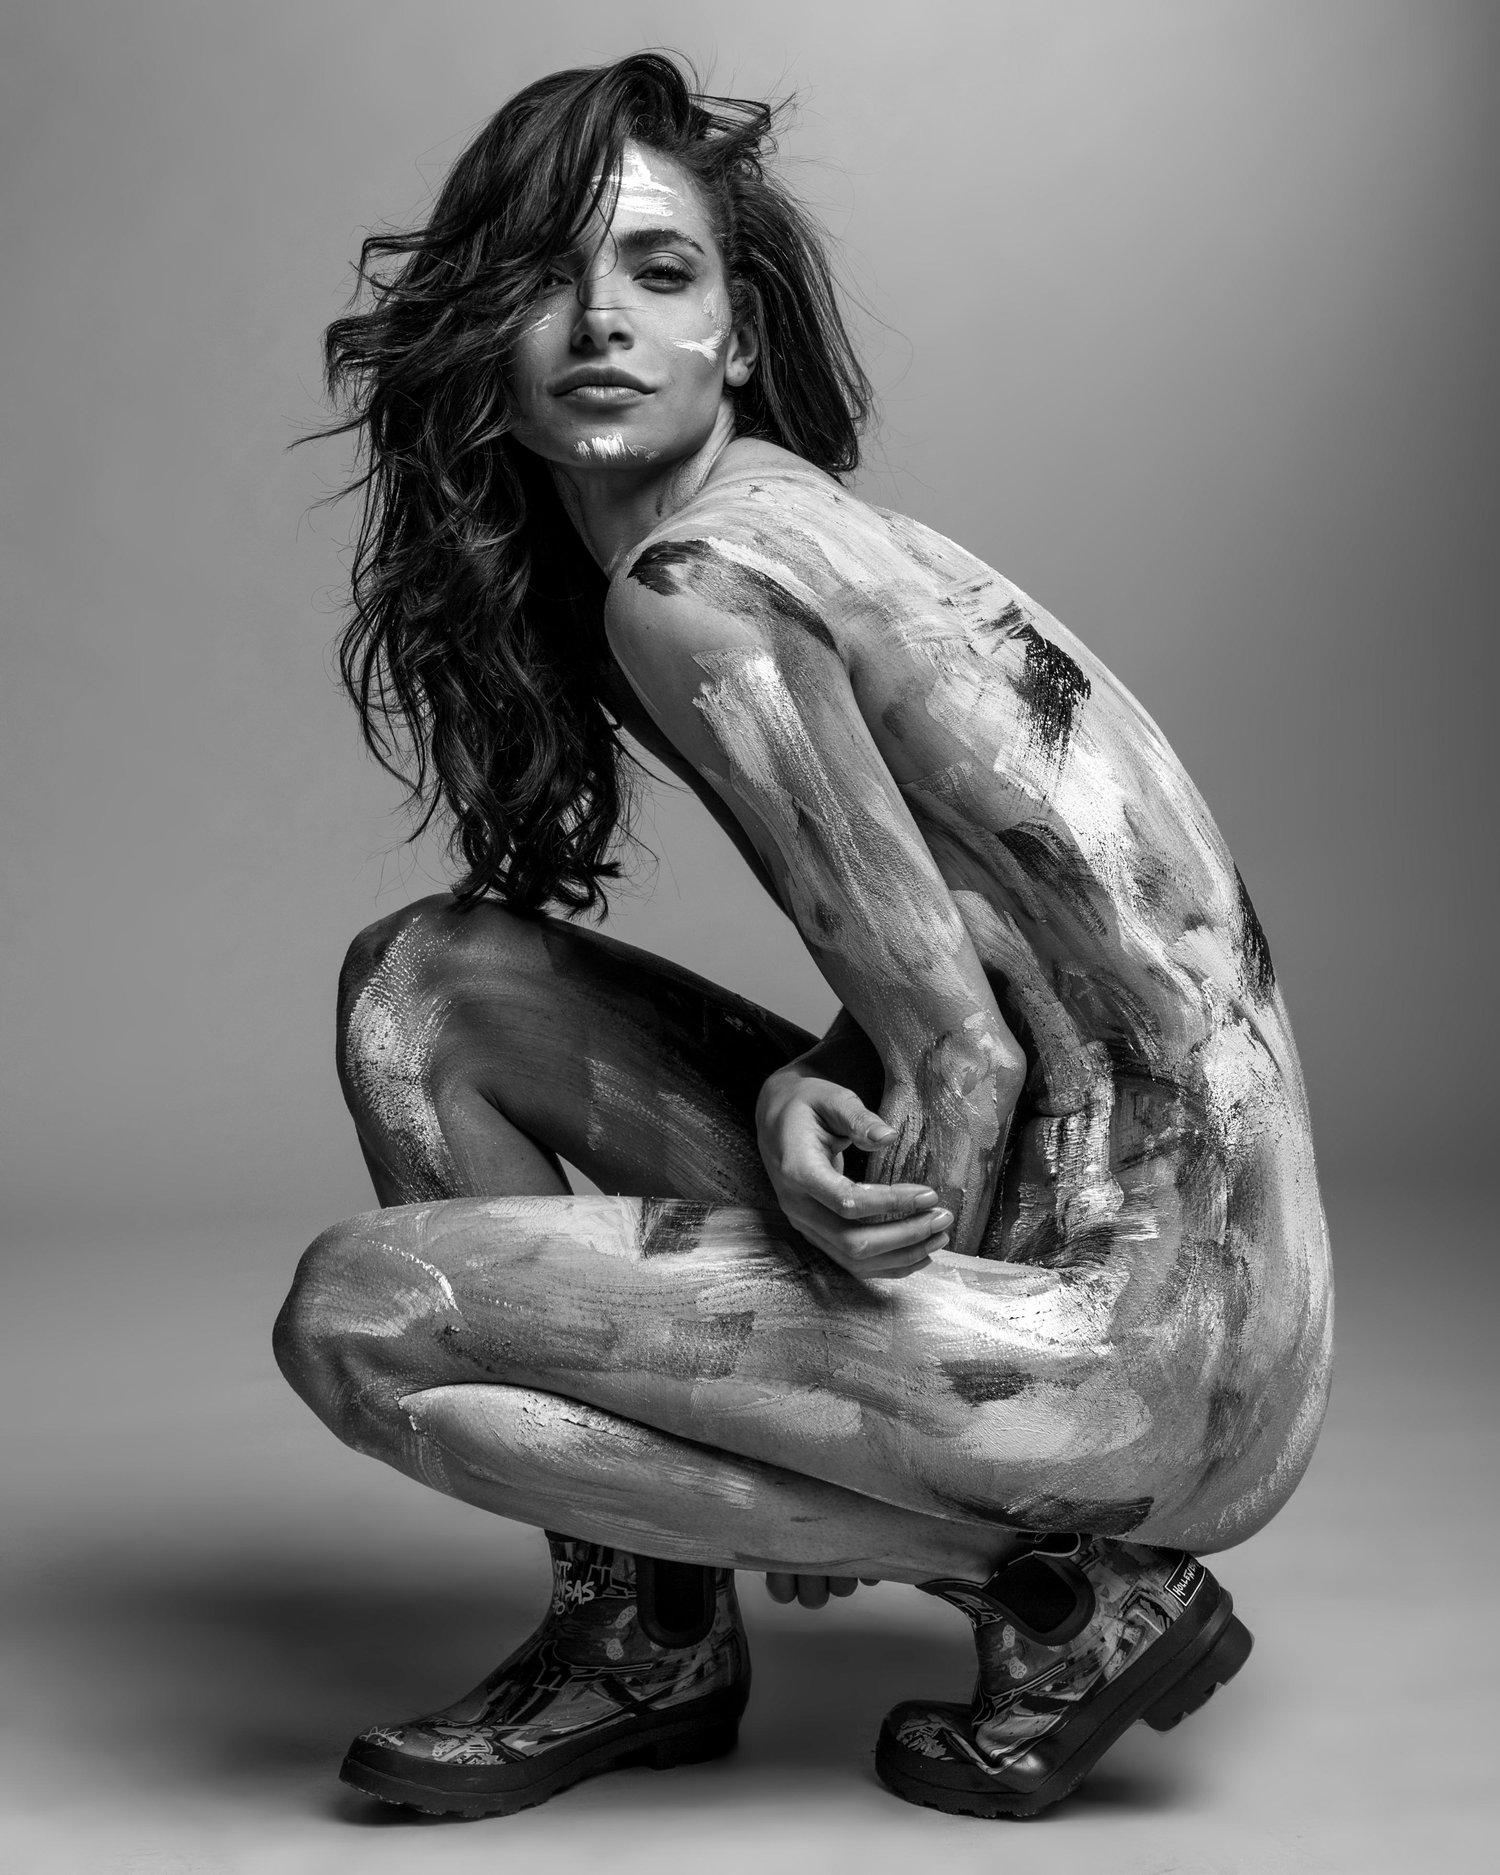 Paint me - Jordan Rand & Laura Peterson / фото Philippe Regard